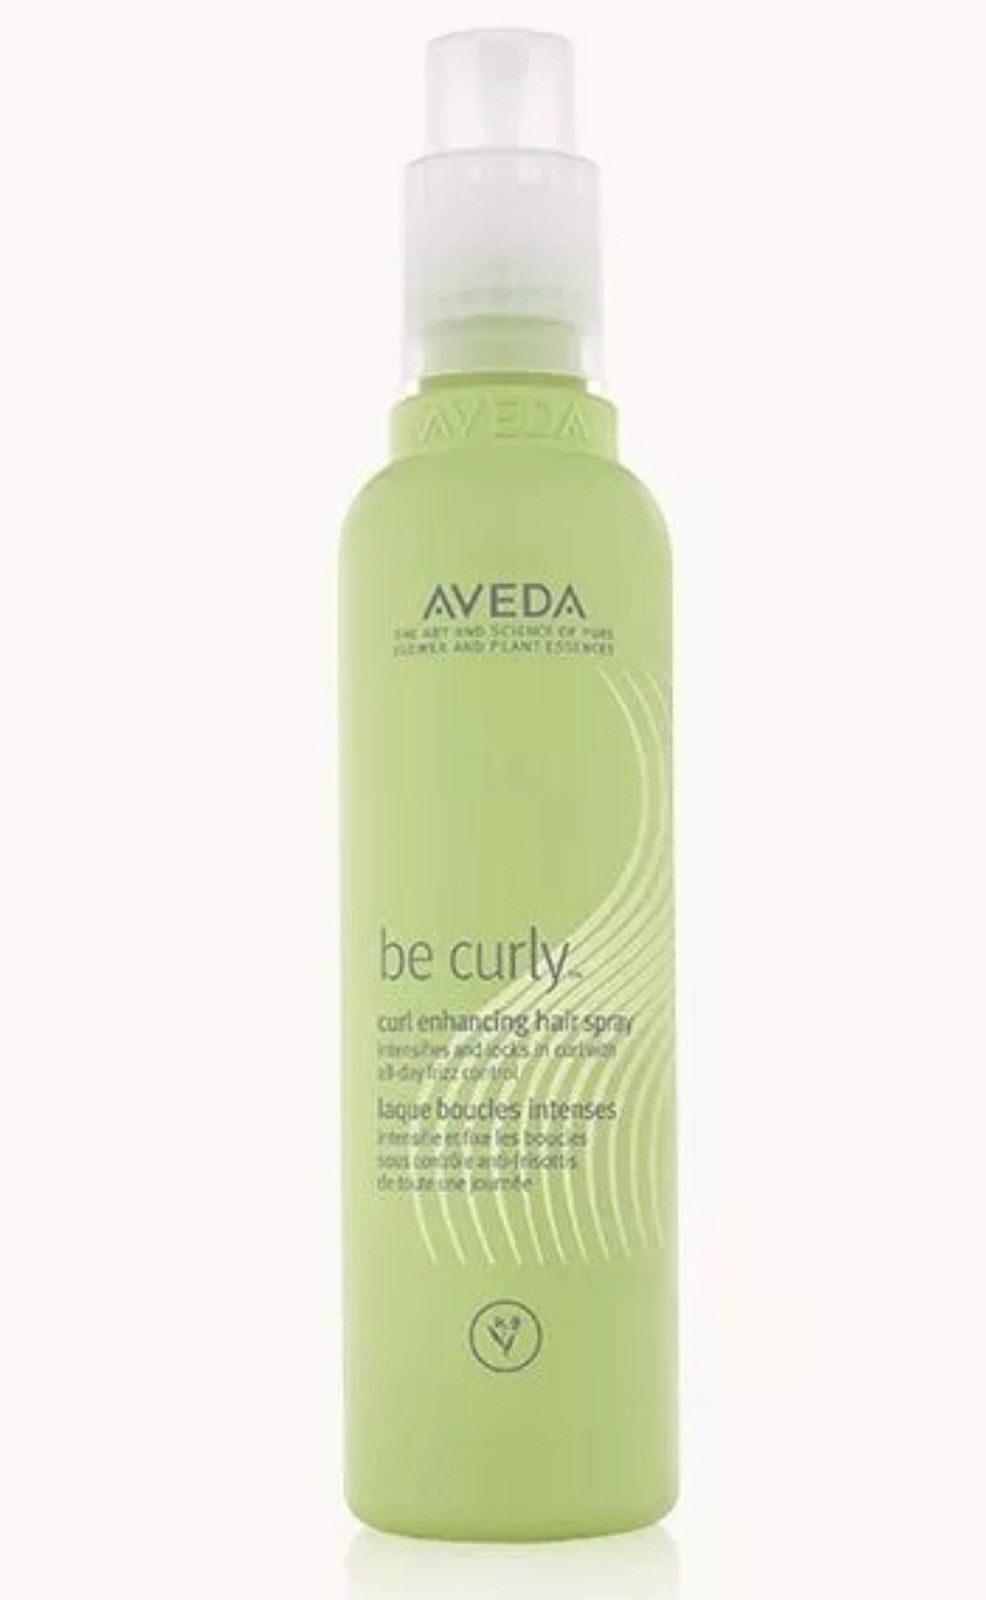 AVEDA BE CURLY CURL ENHANCING HAIR SPRAY 200 ML 6.7 OZ NEW 1